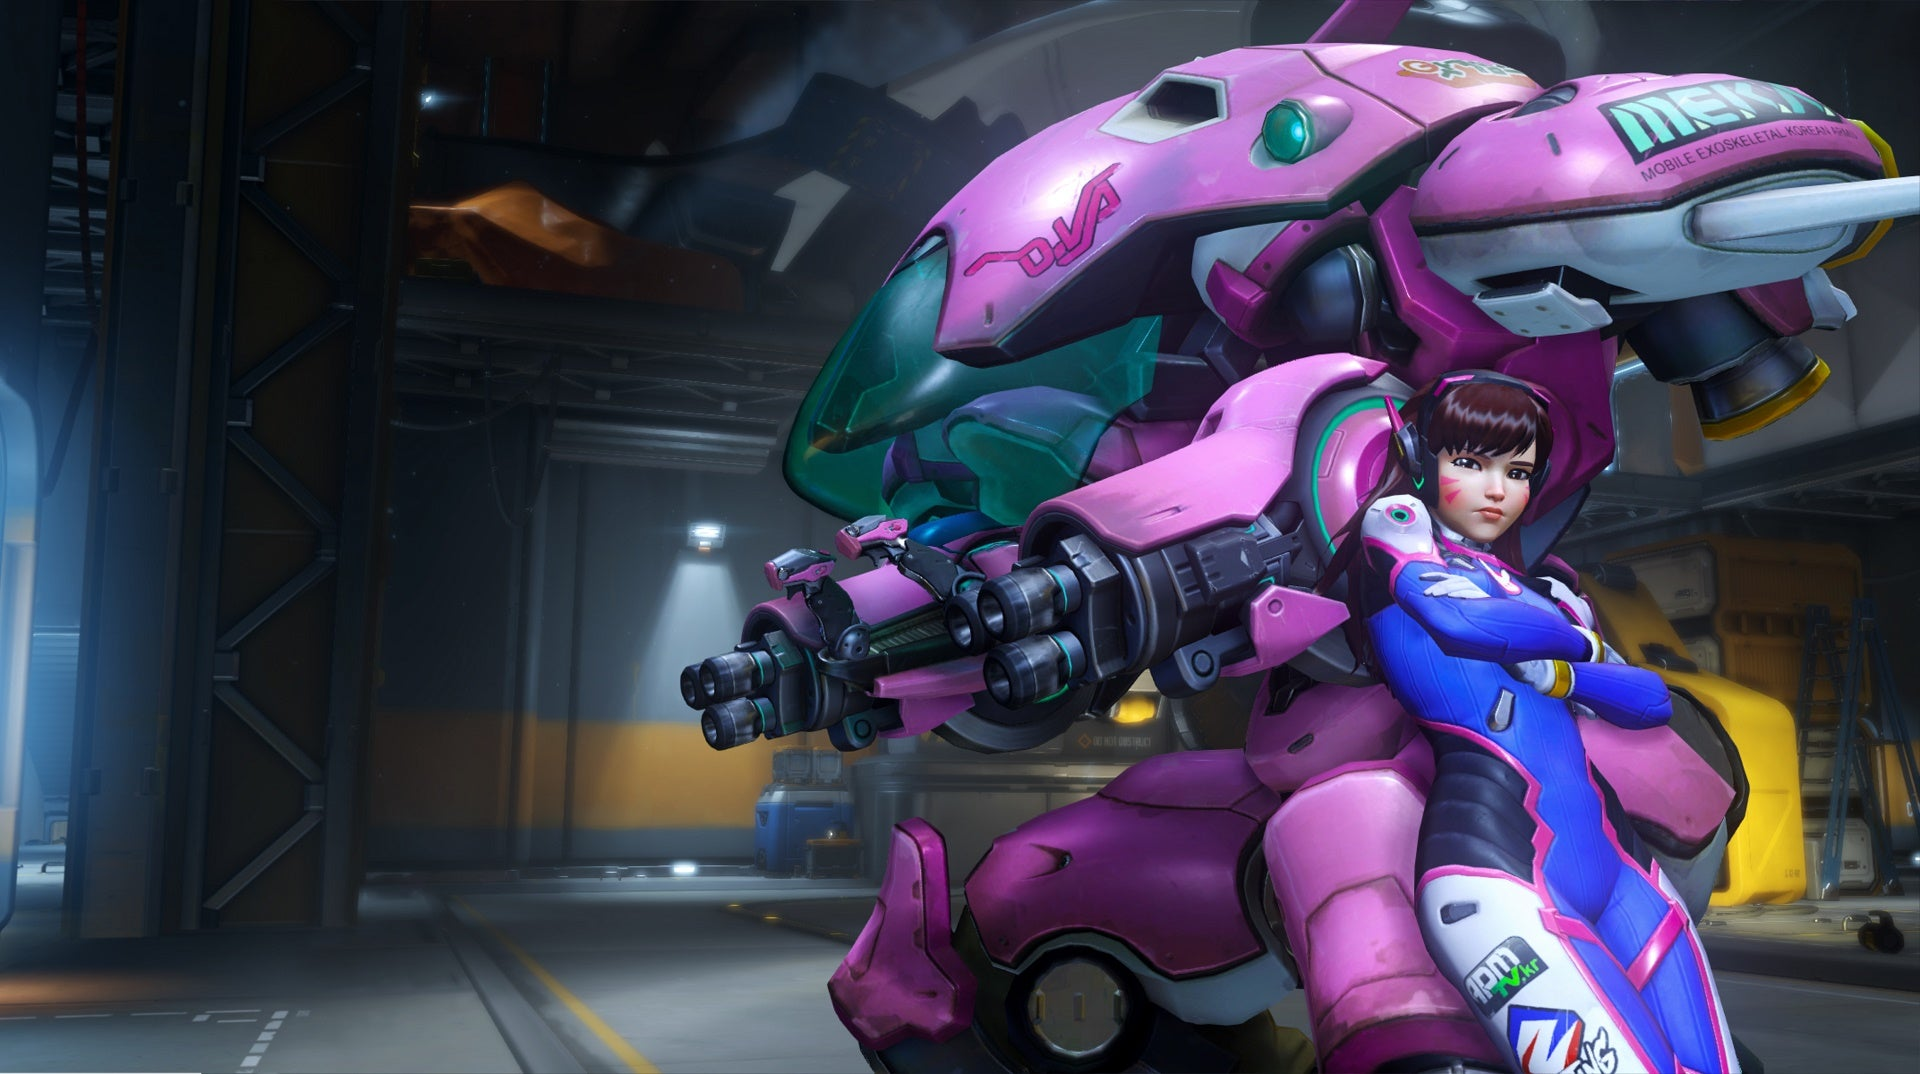 Blizzard Responds To Ongoing Fan Anger Surrounding The Overwatch Test Server